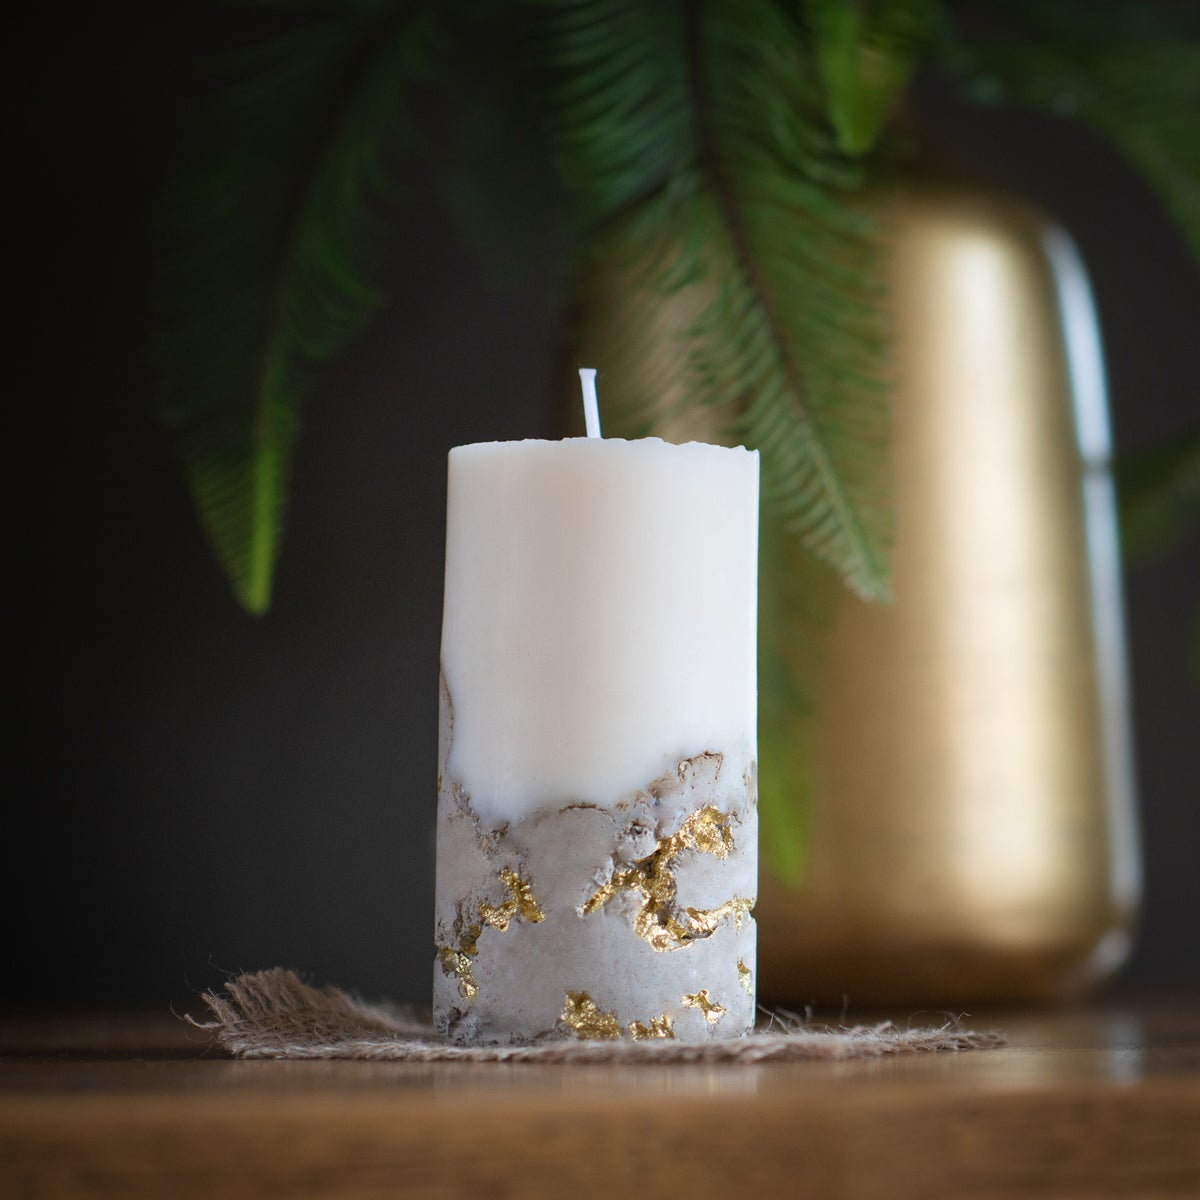 Soy Wax Concrete Candle - Gold Detail